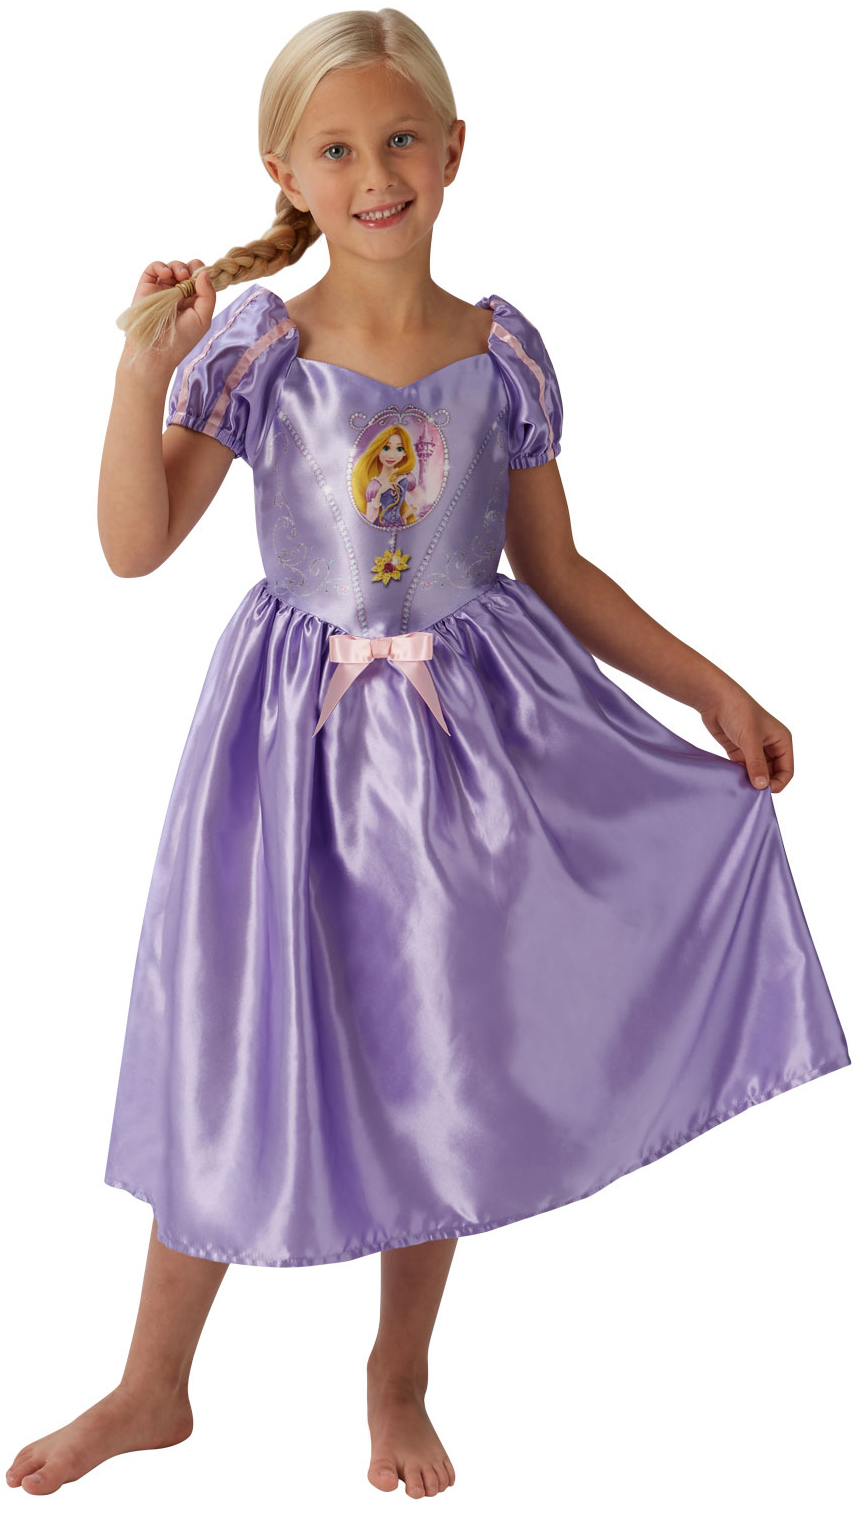 b7a3f4b6e68a Fairytale Rapunzel Girls Costume | Girl's World Book Day Fancy Dress  Costumes | Mega Fancy Dress